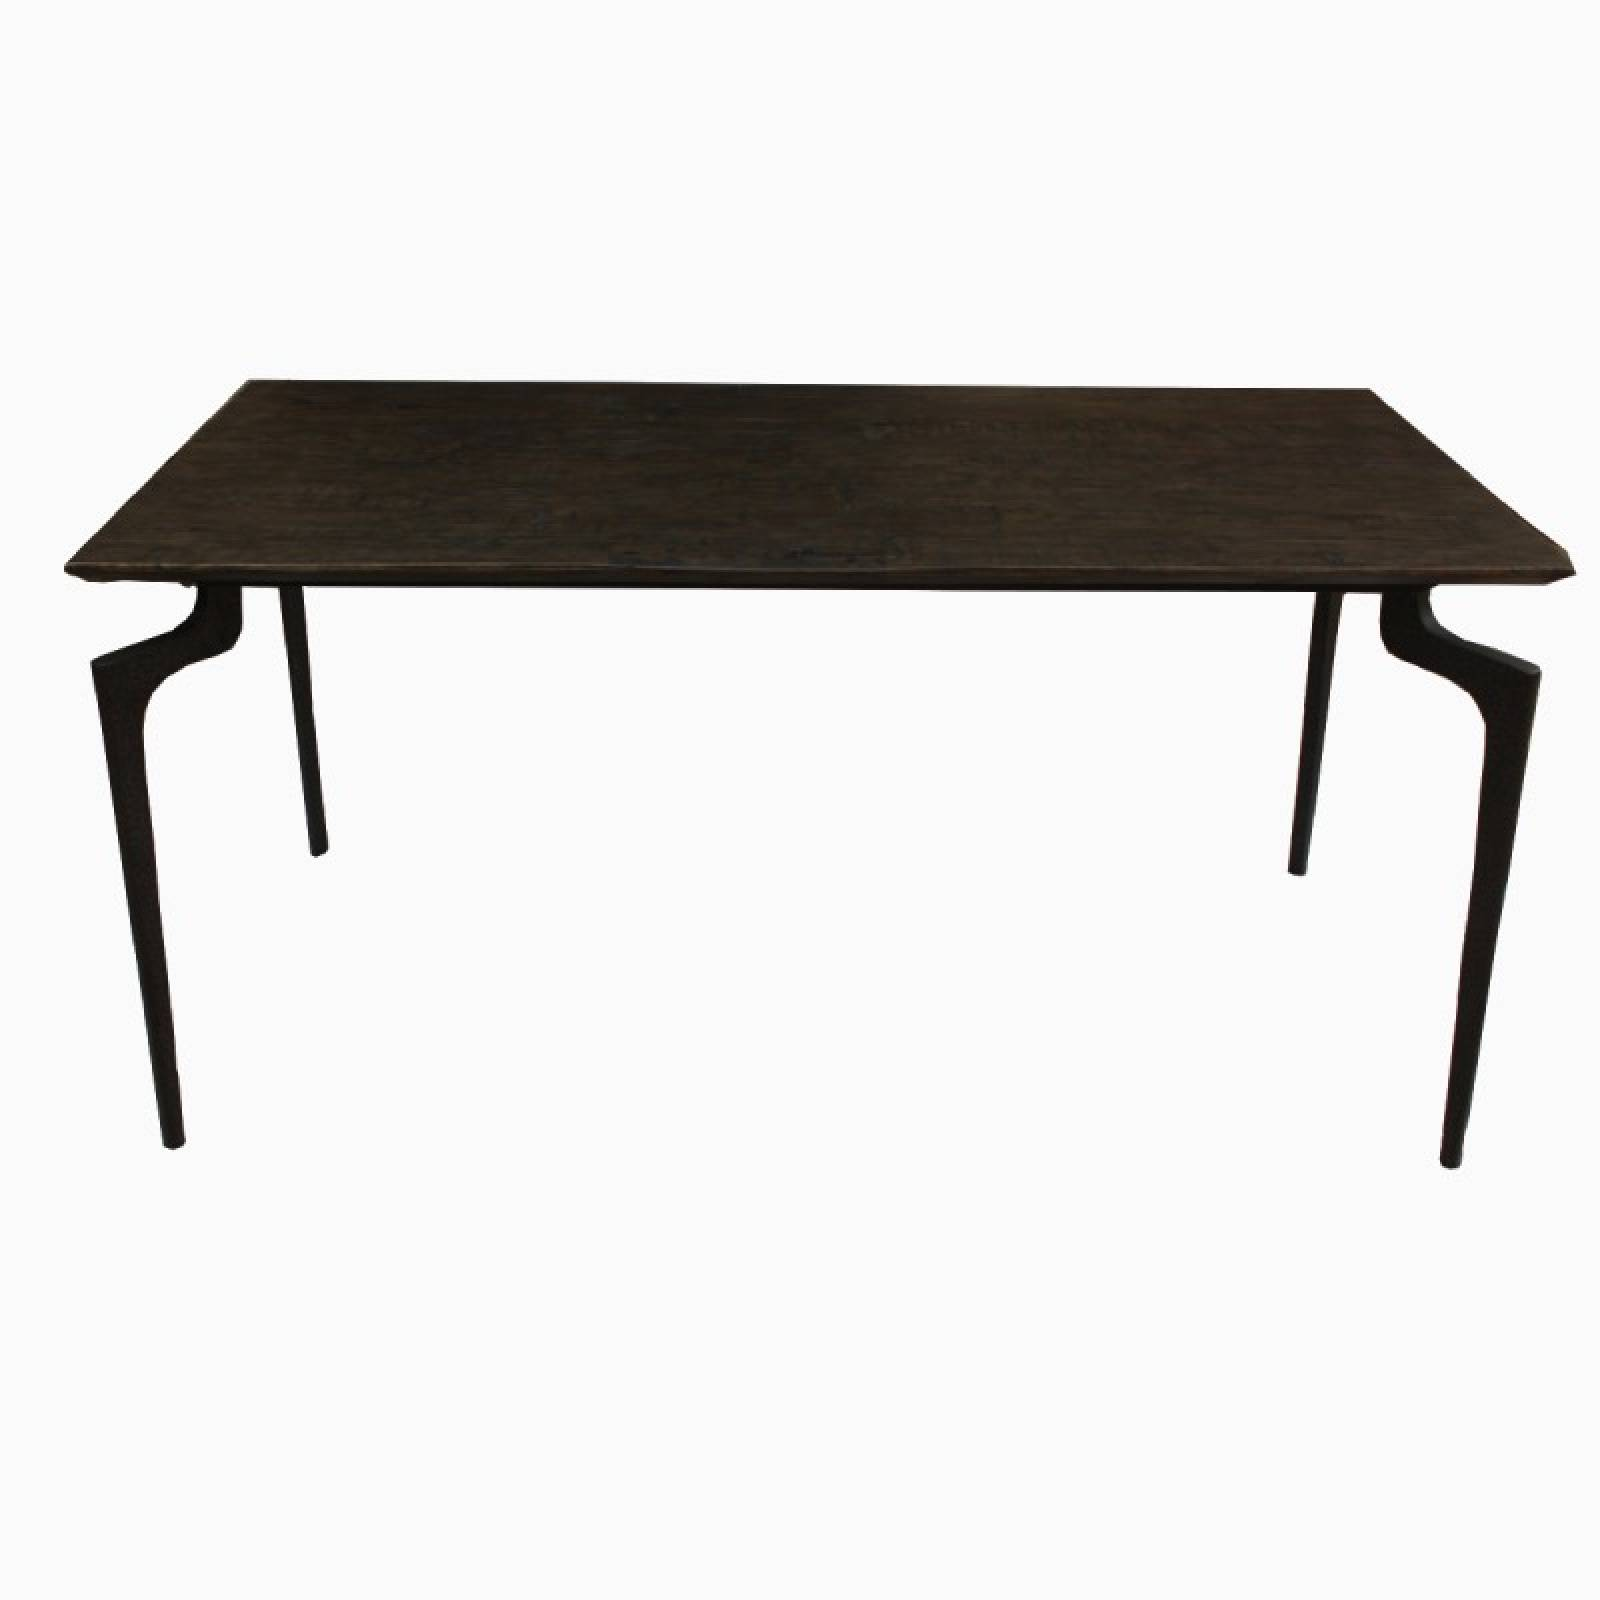 The Whitby Small Black Wood And Metal Dining Table